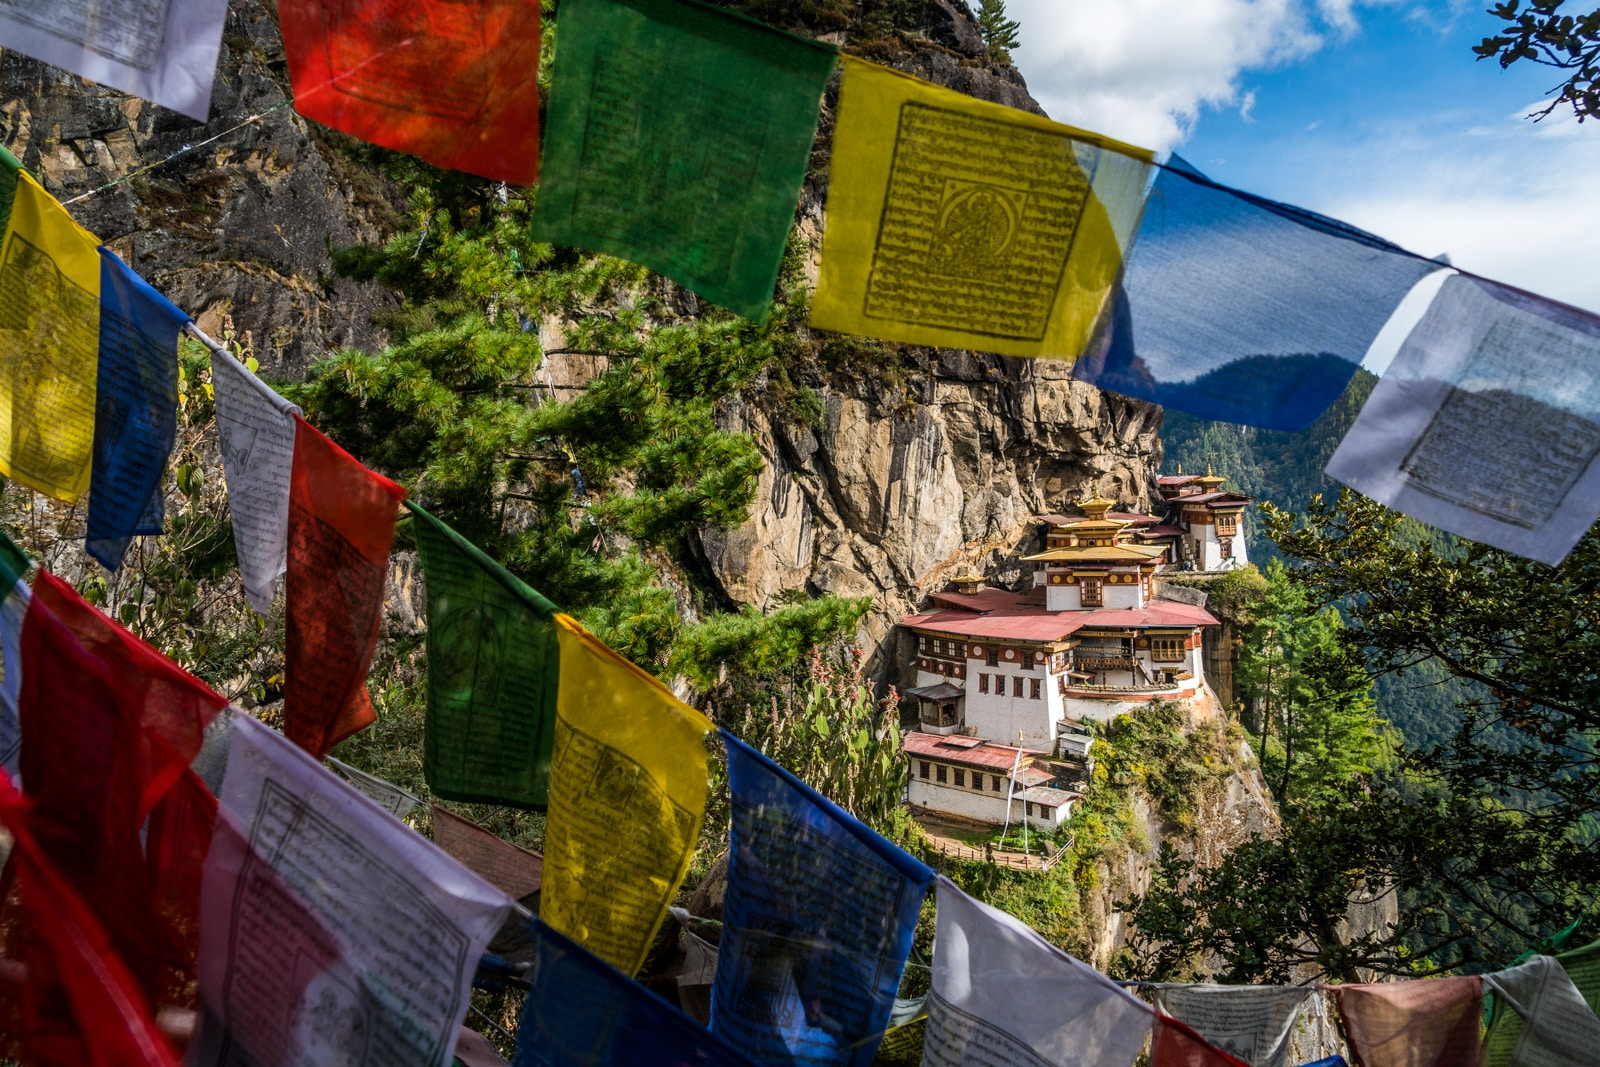 Tiger's Nest Monastery in Paro